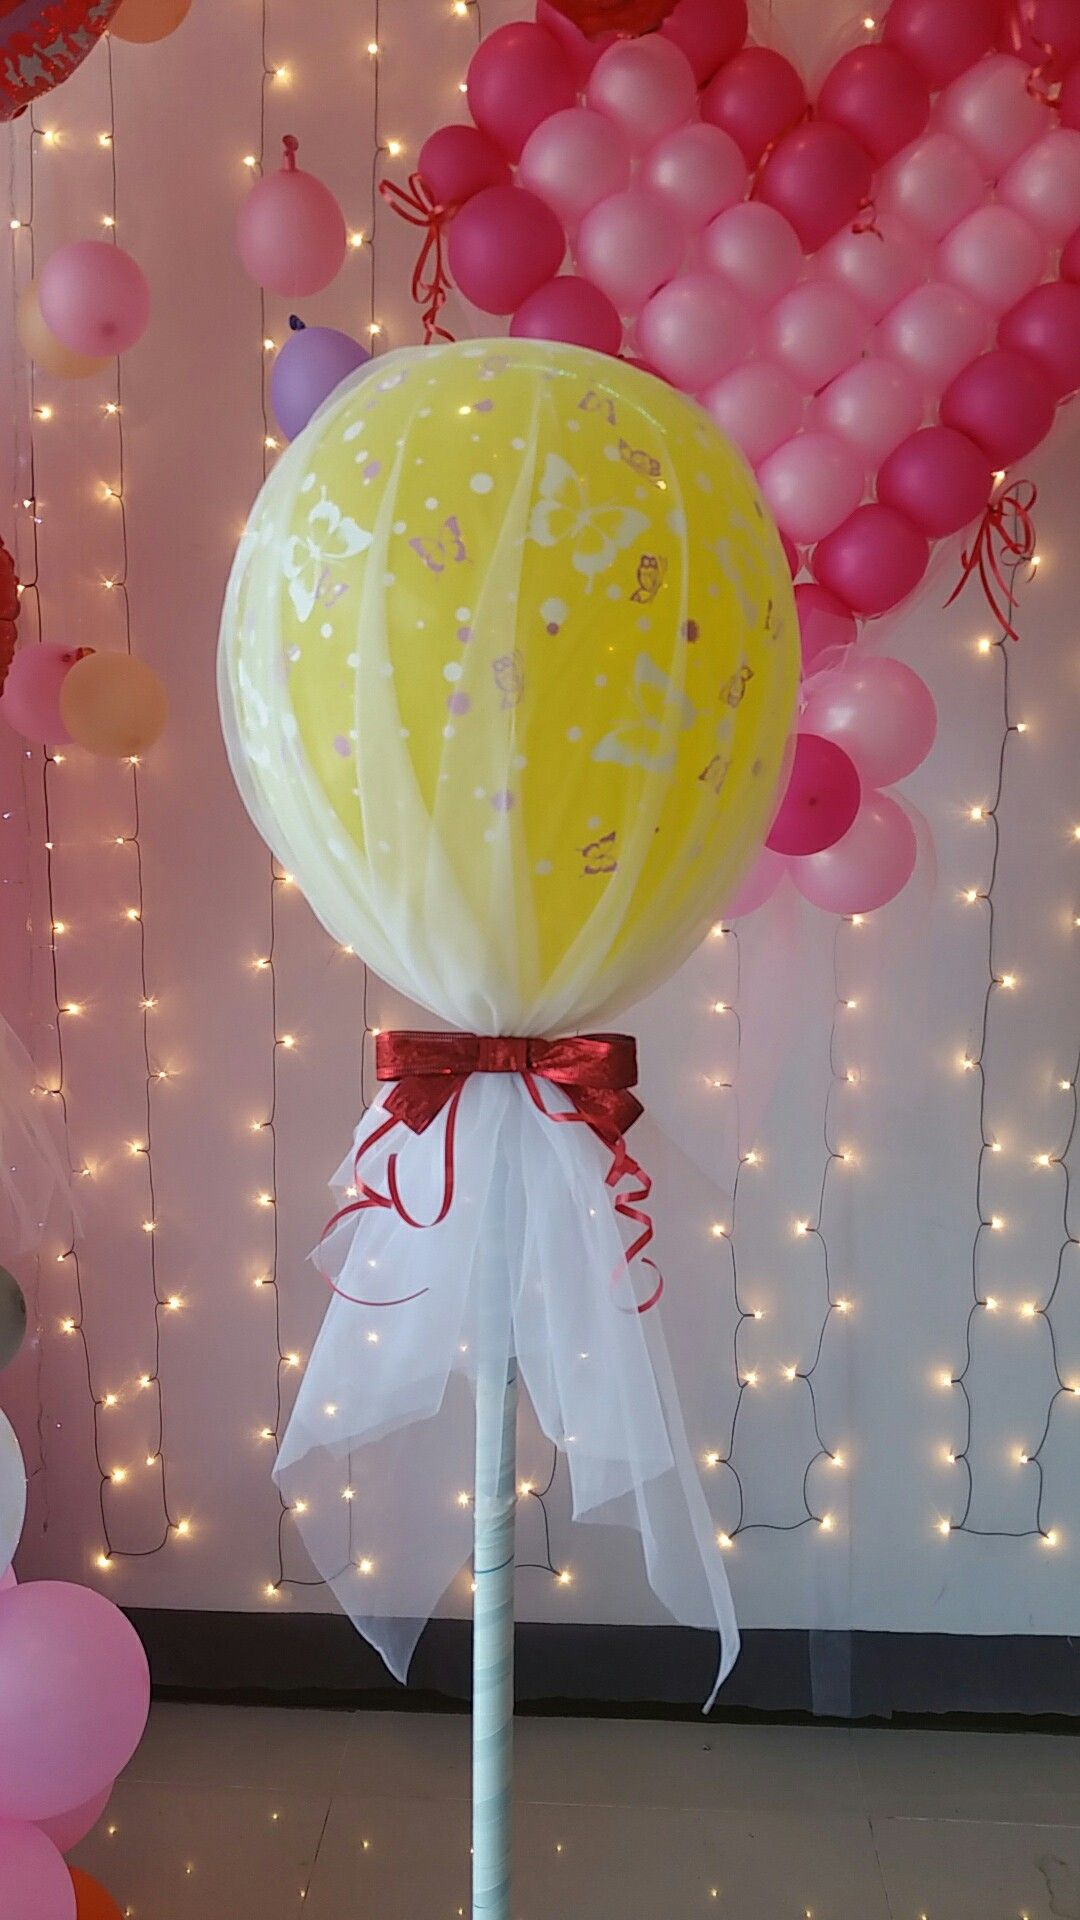 Pin by Jin Nam on Balloon decoration | Pinterest